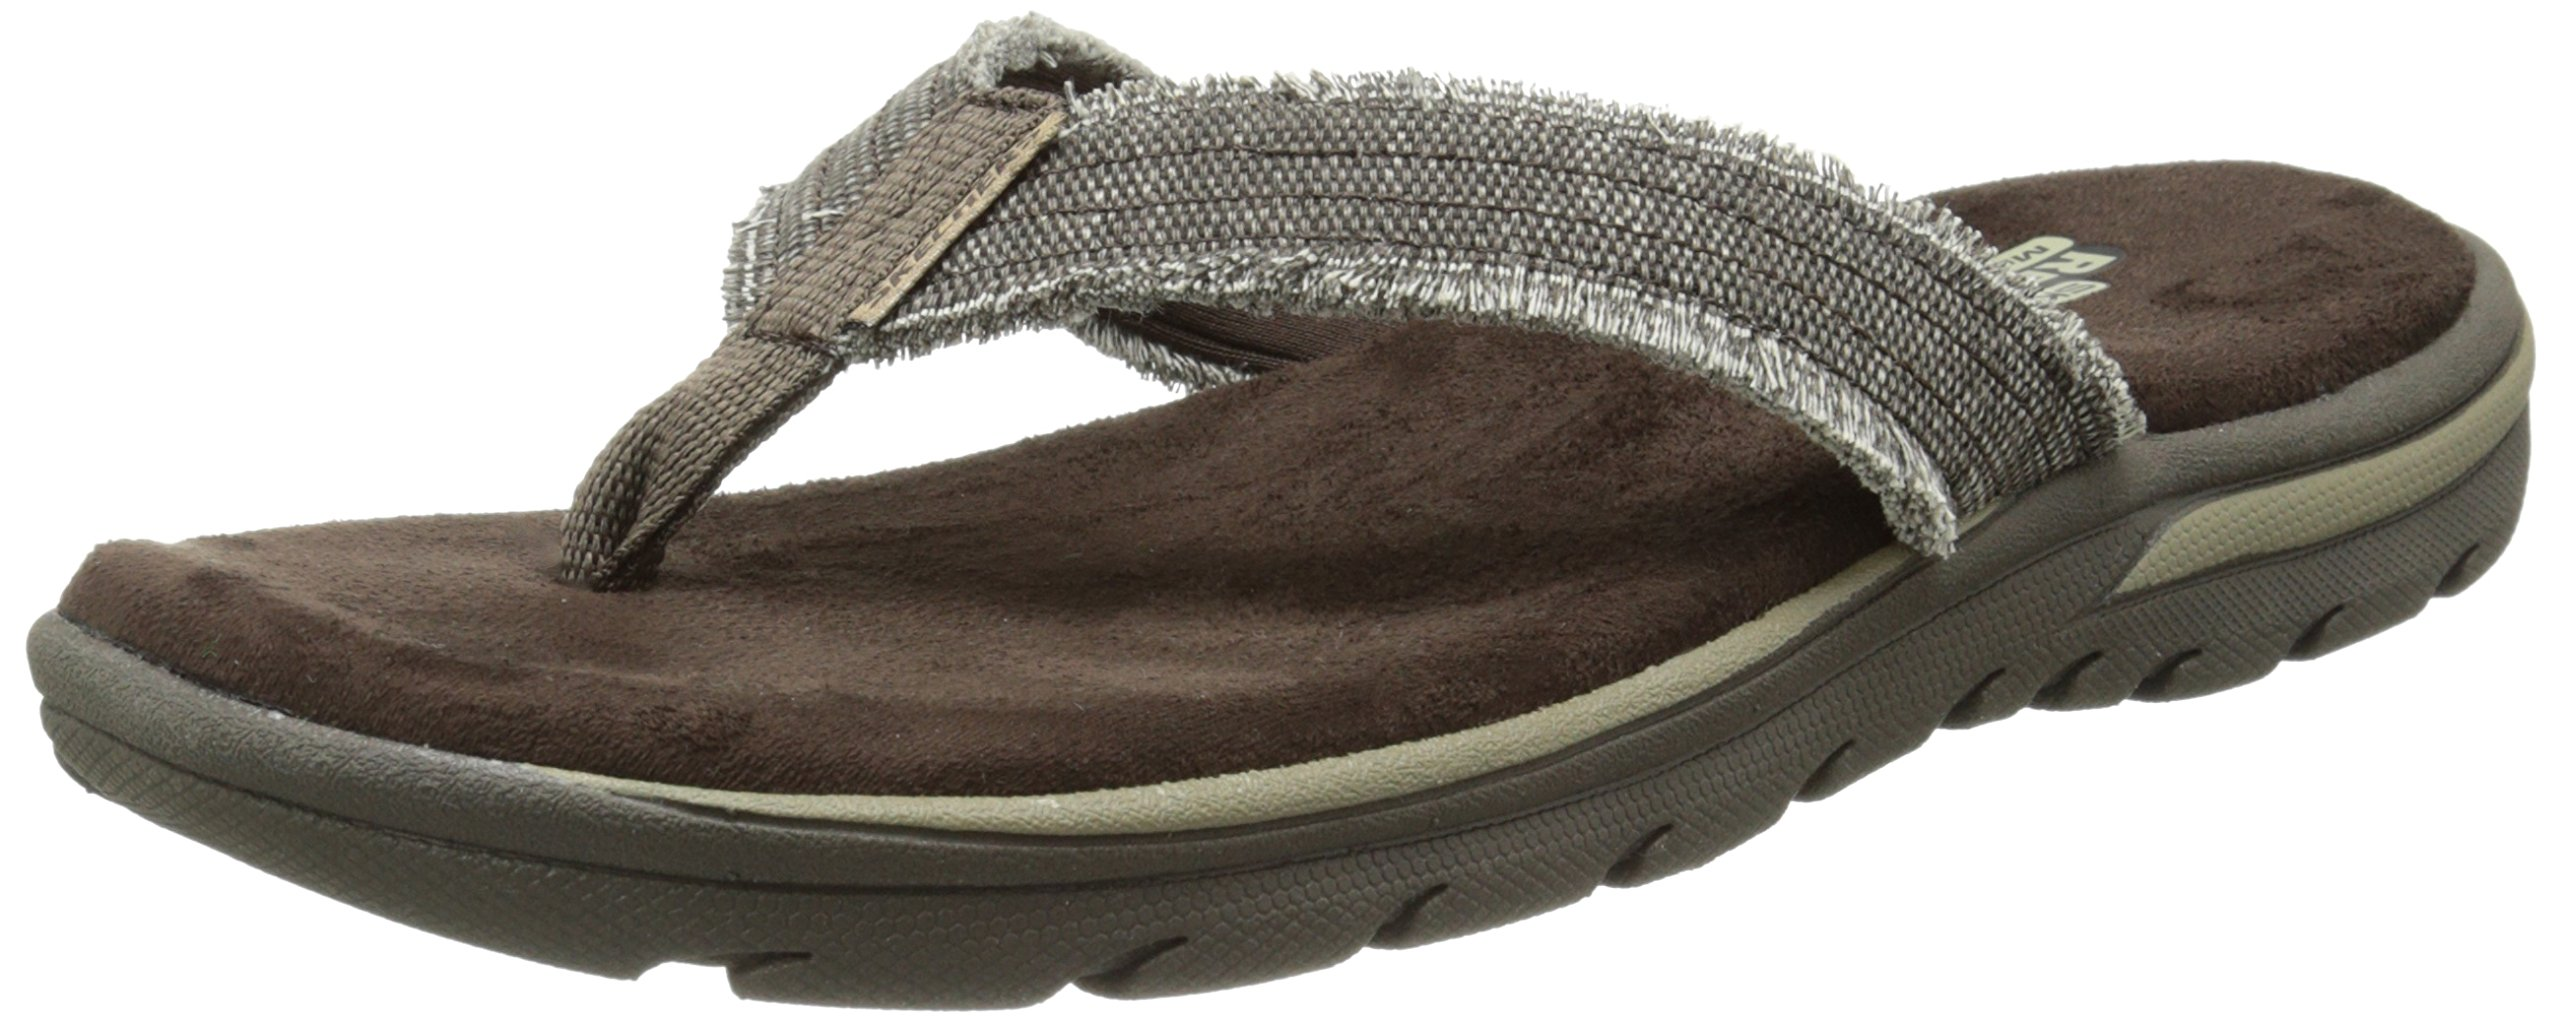 Skechers Men's Bosnia Flip-Flop,Chocolate,10 M US by Skechers